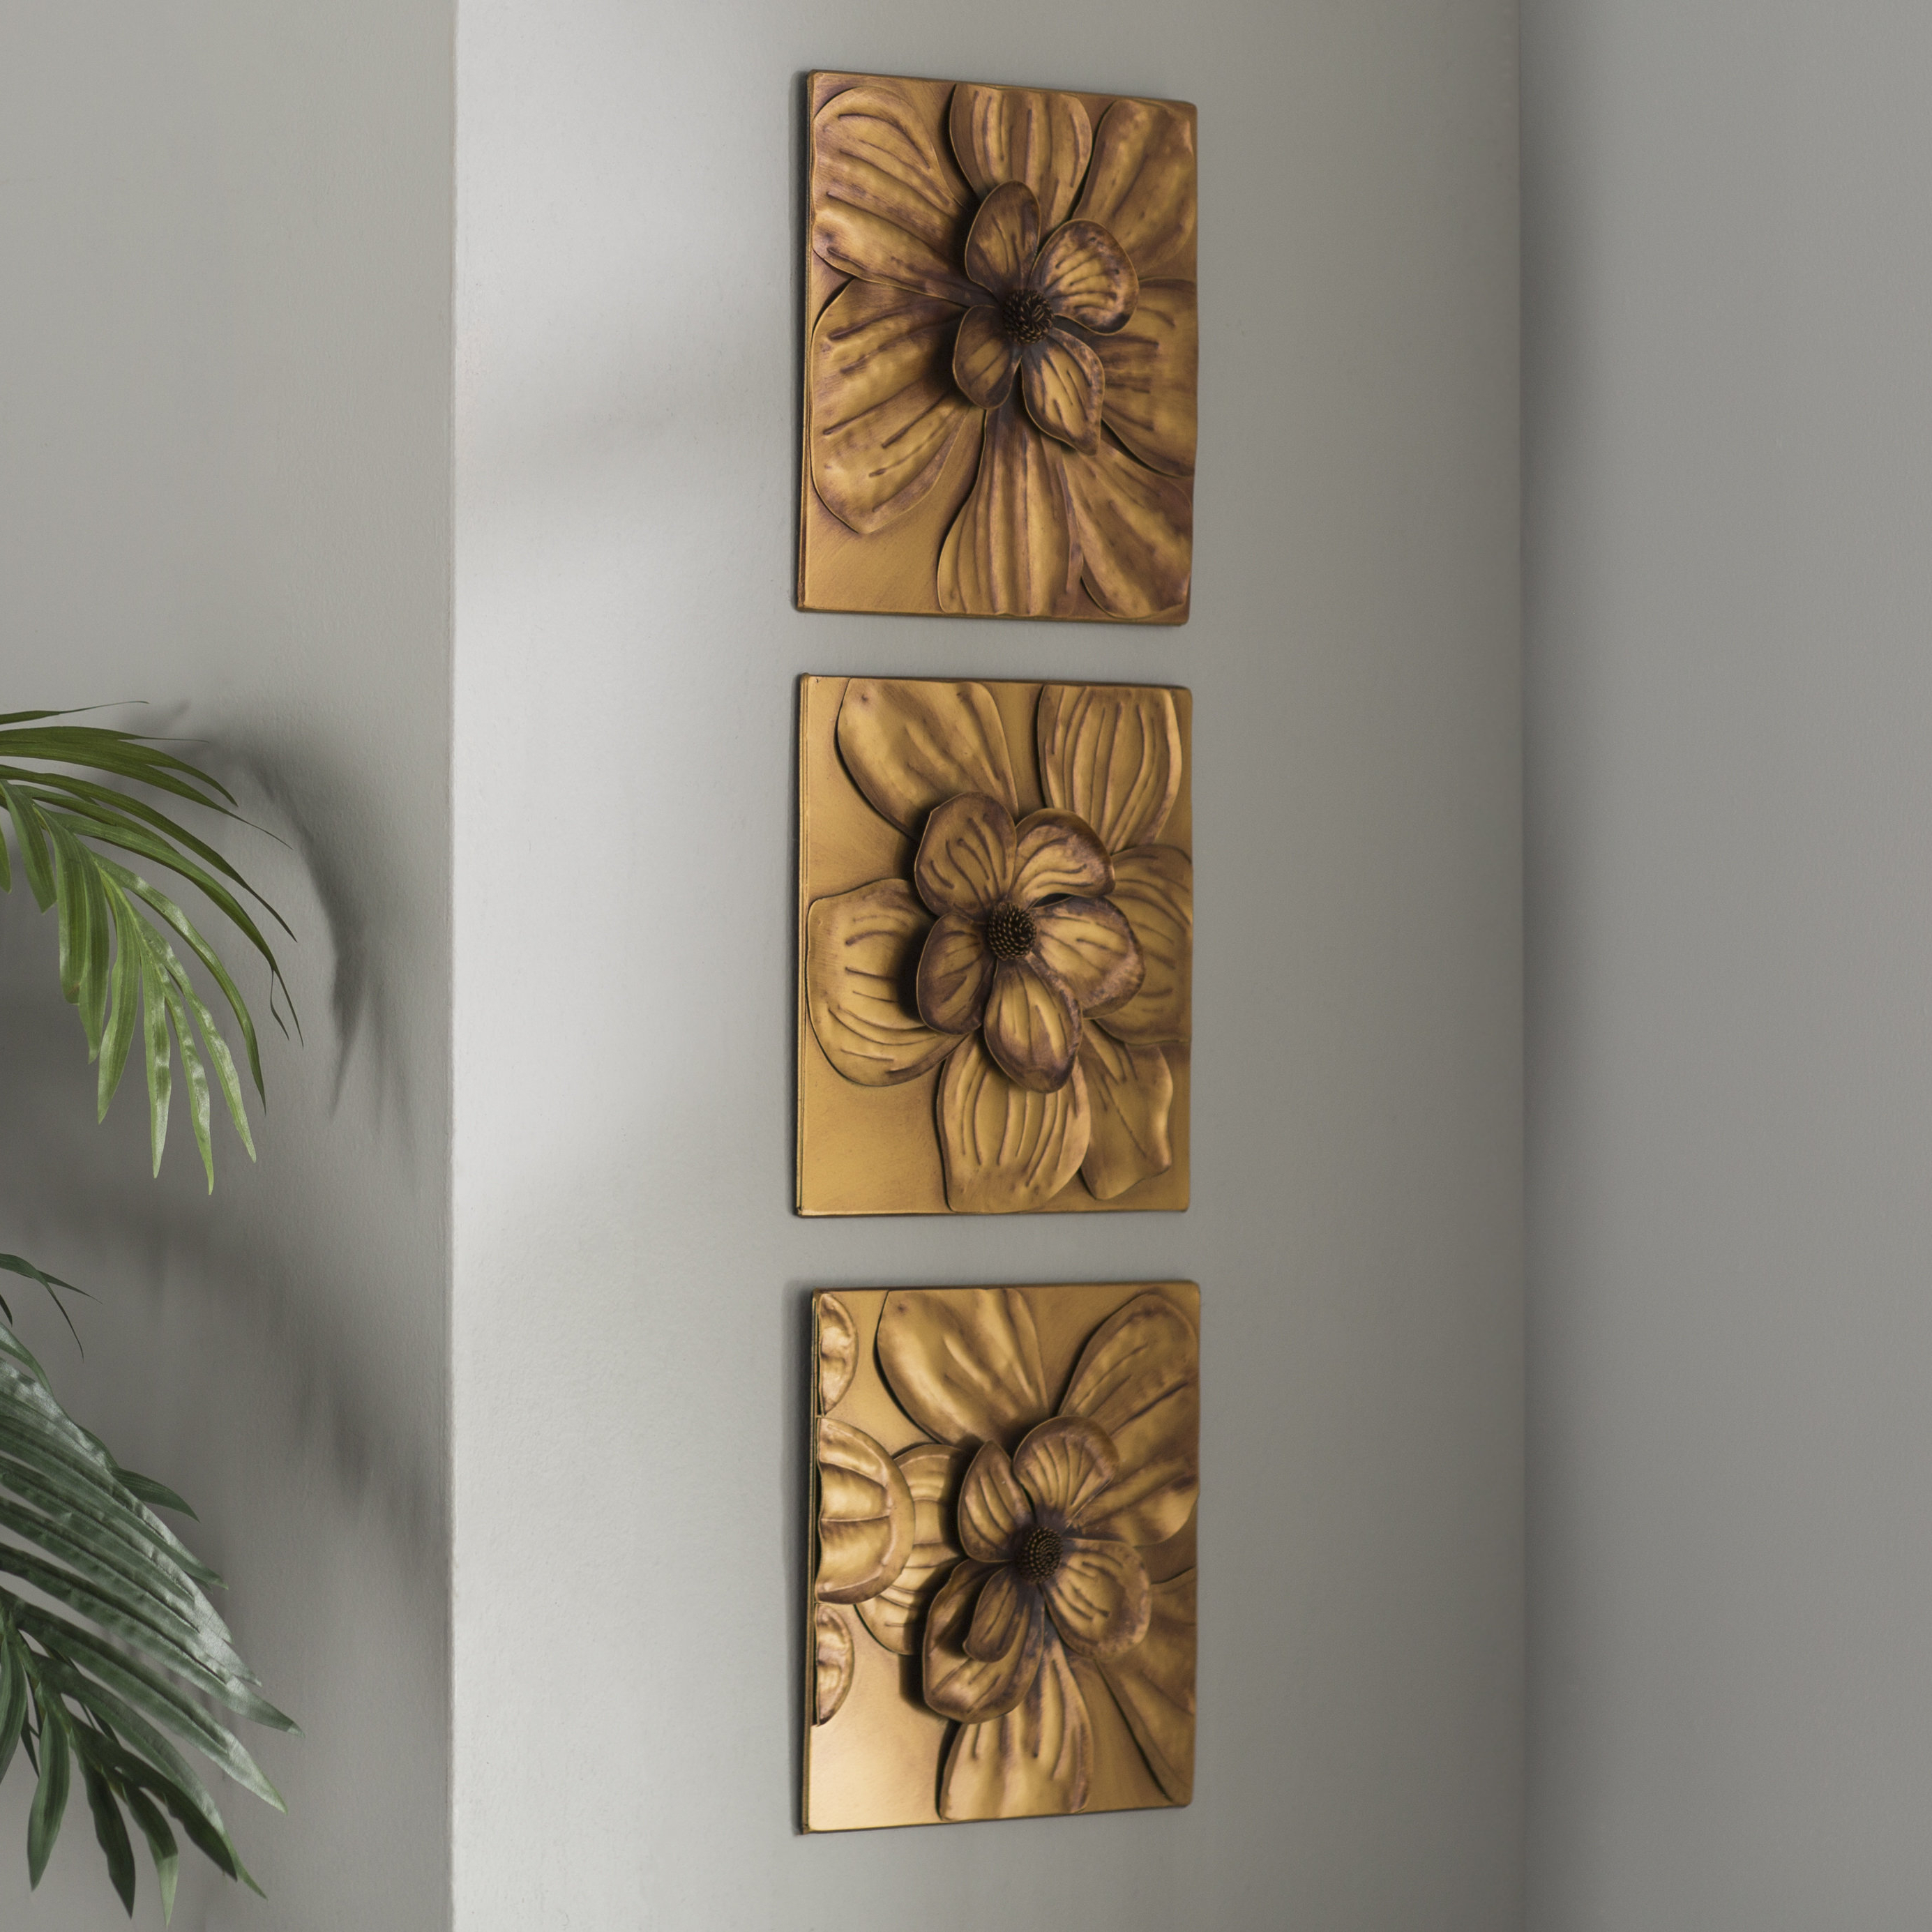 4 Piece Wall Decor Sets By Charlton Home Intended For Current Charlton Home 3 Piece Magnolia Brown Panel Wall Décor Set & Reviews (Gallery 2 of 20)